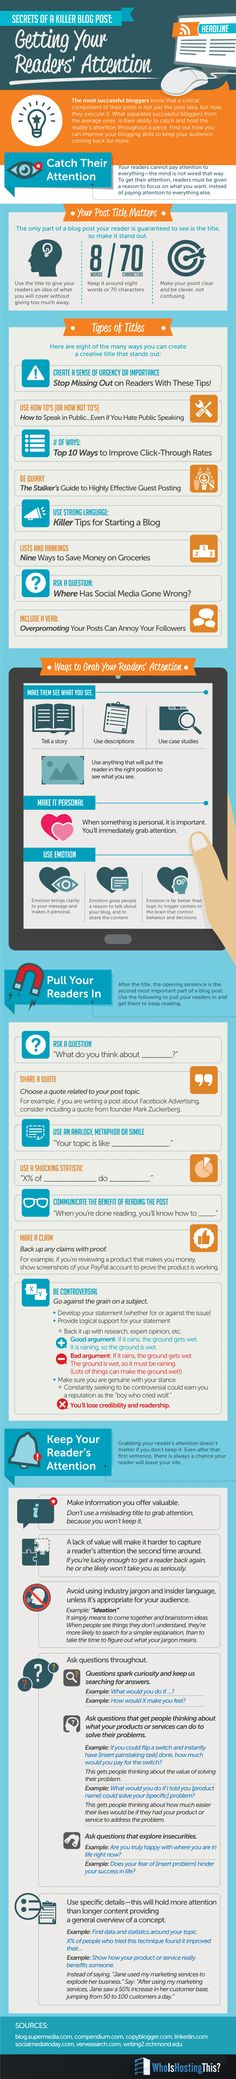 [Infographic] The Secrets of a Killer Blog Post